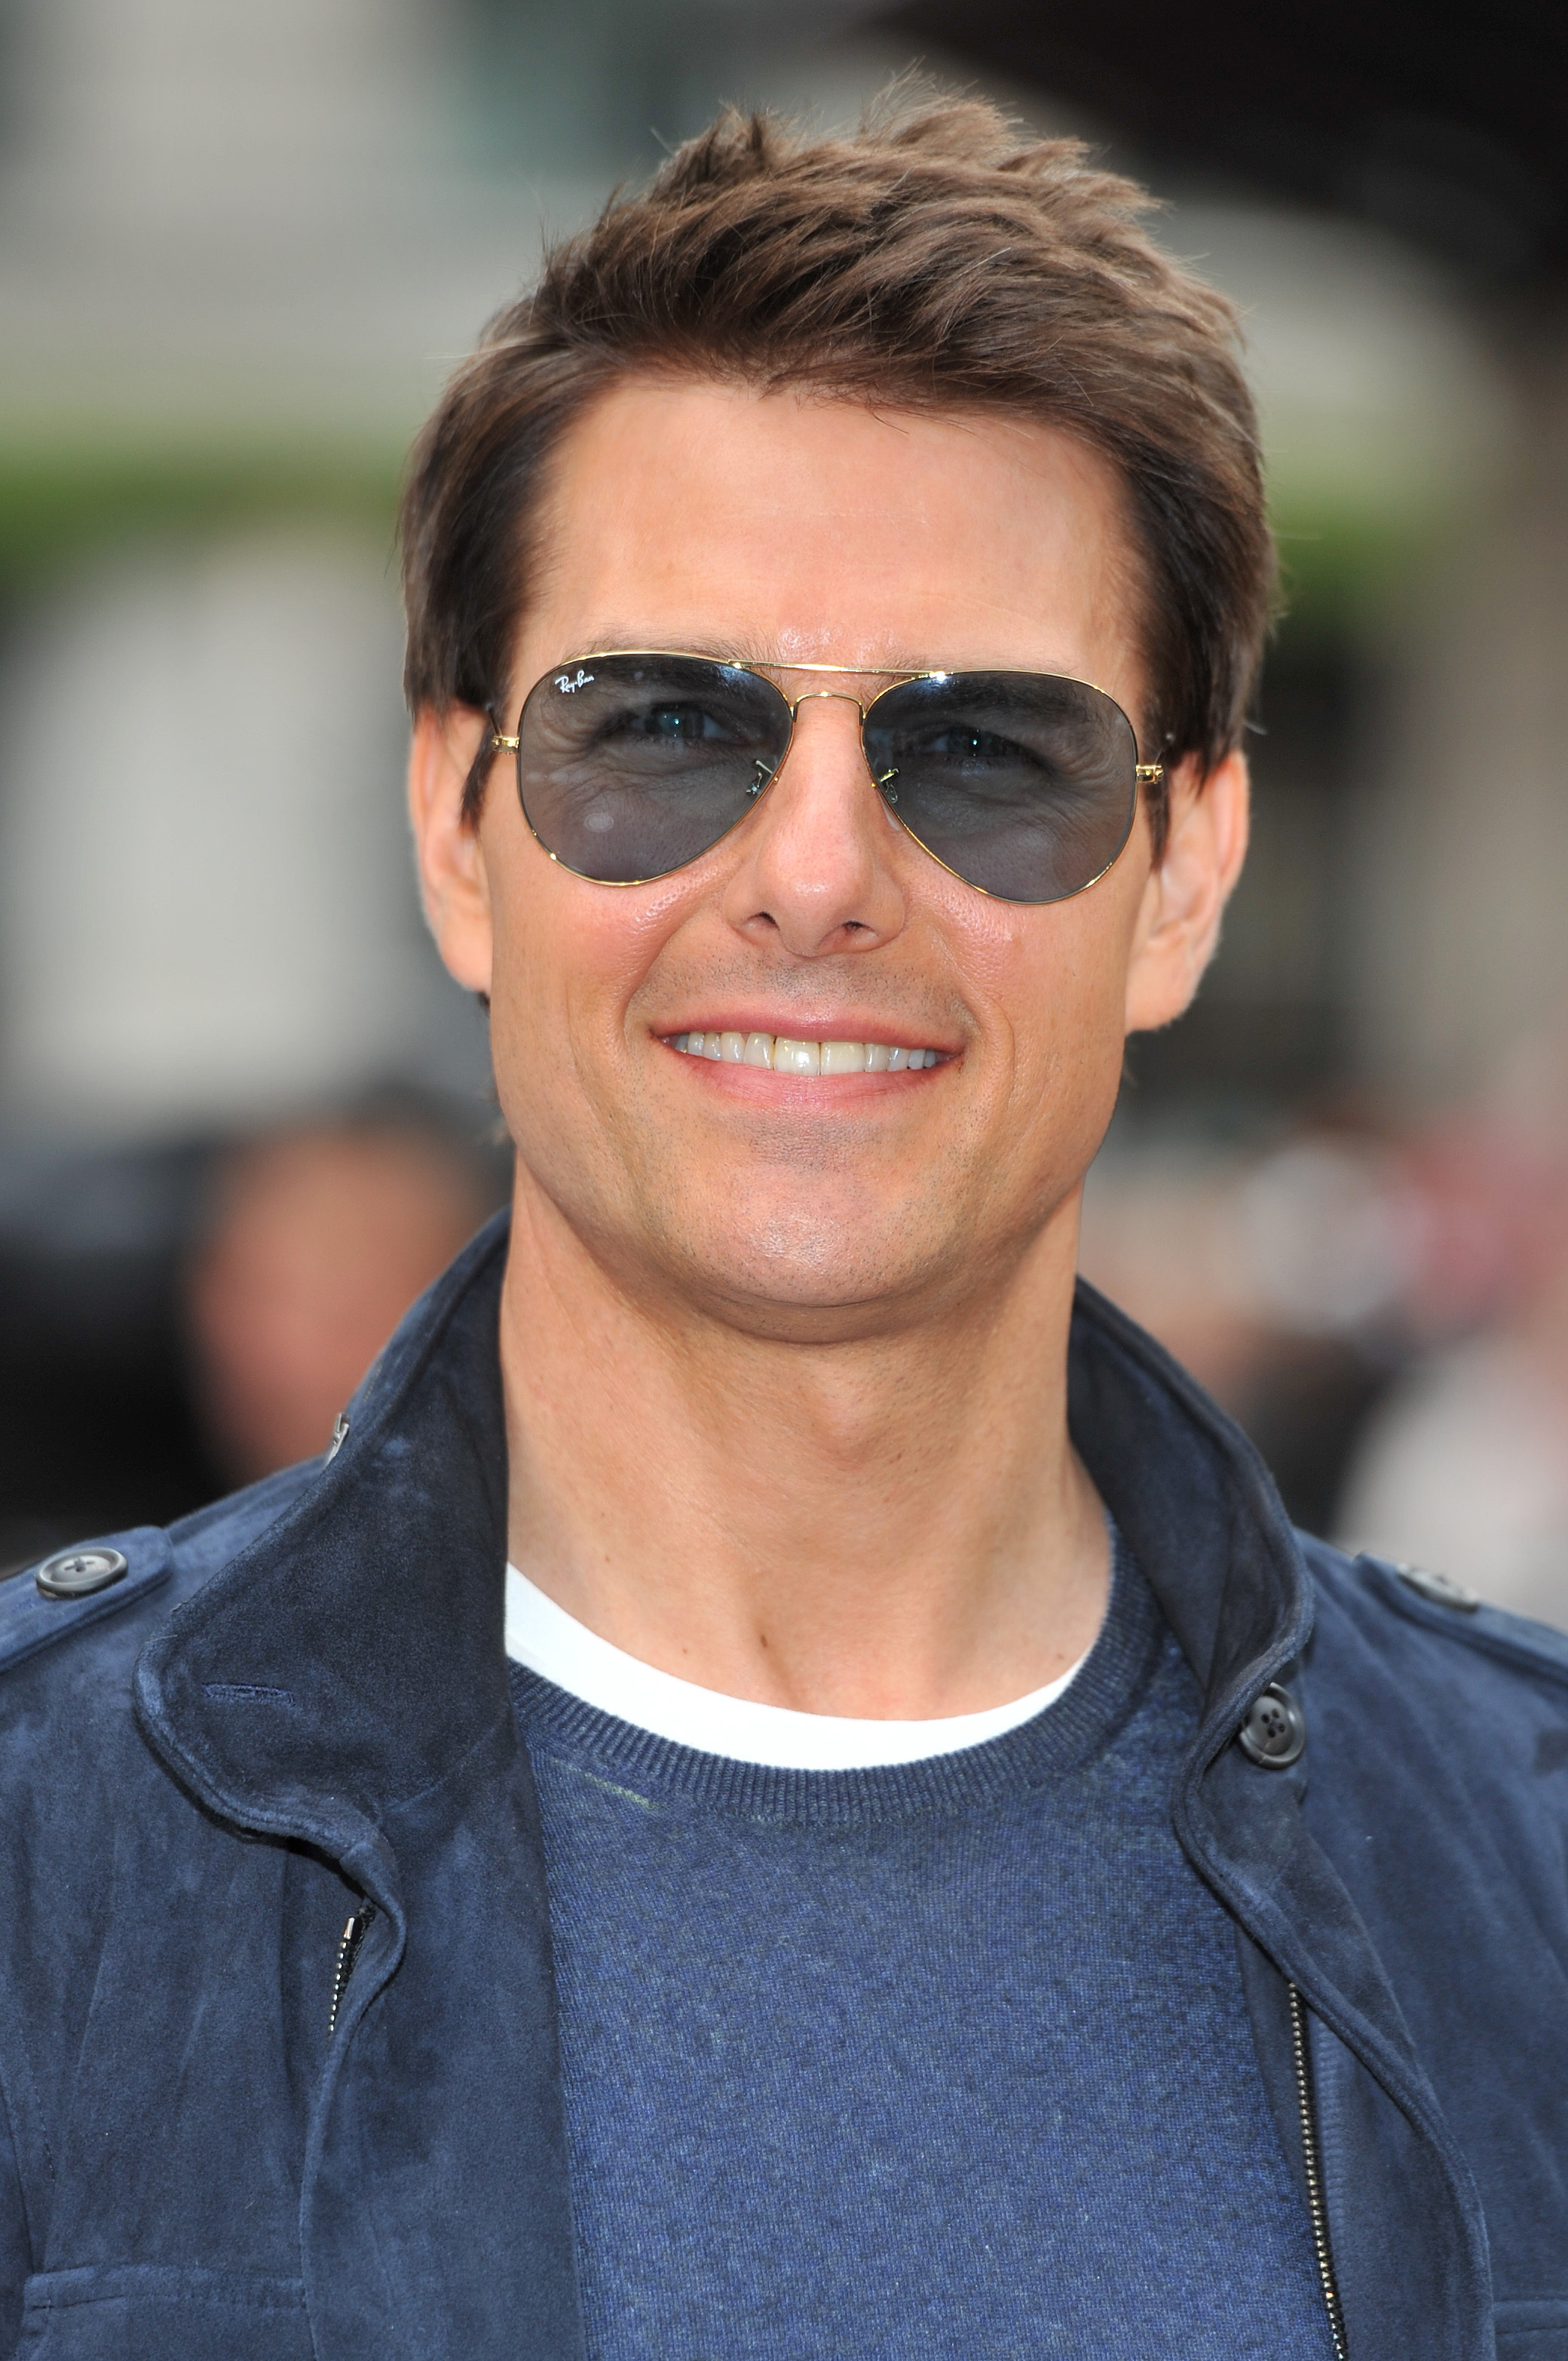 Tom Cruise Wallpapers 92 images in Collection Page 2 2080x3131